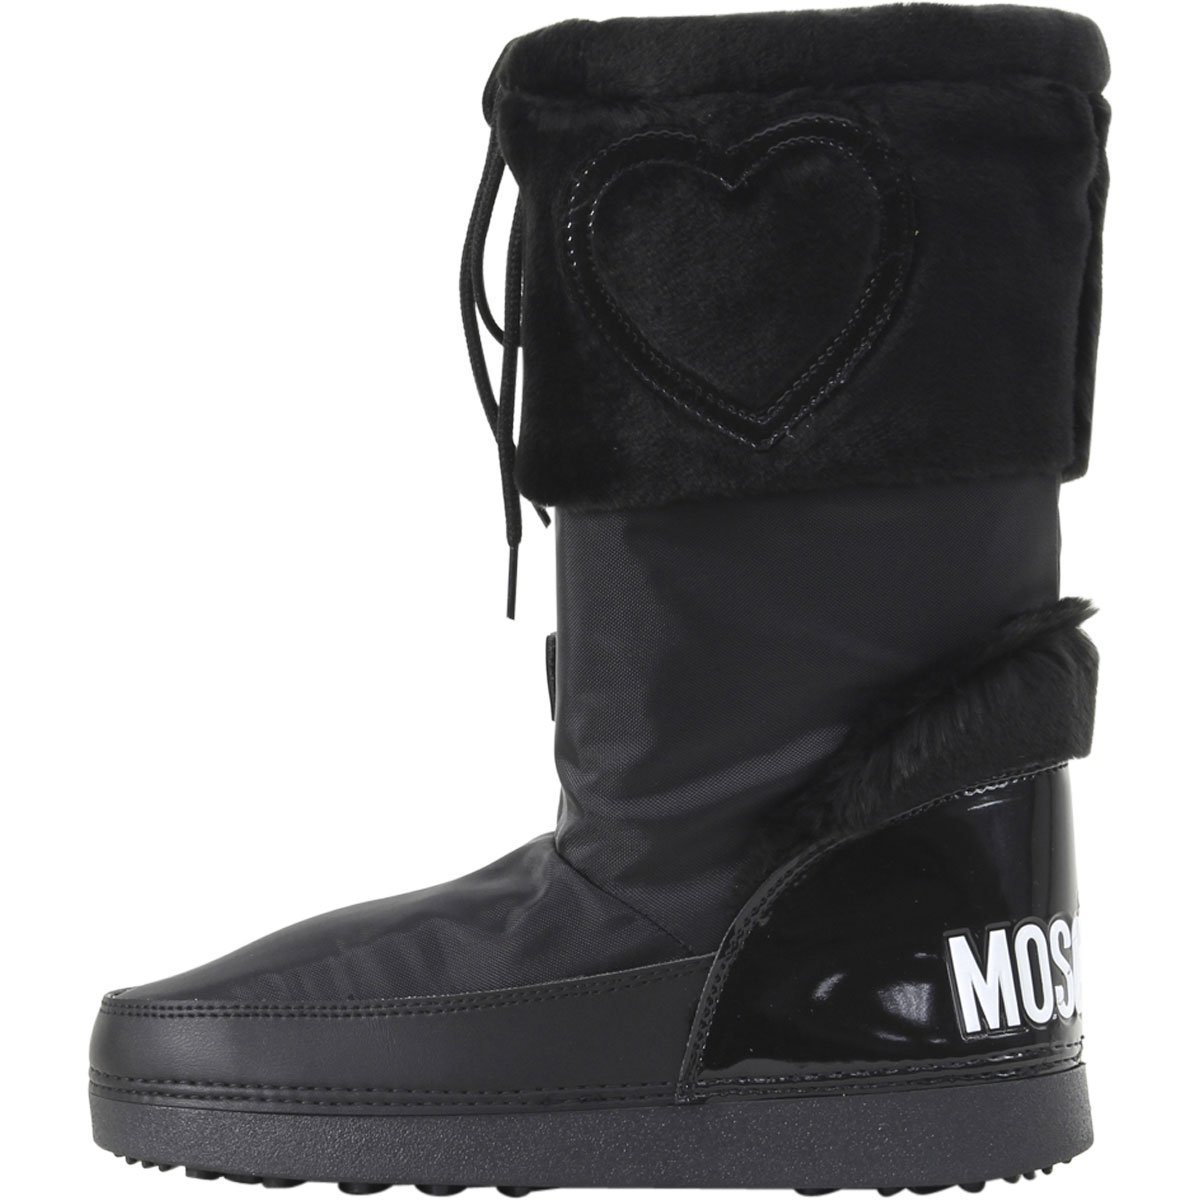 Love Moschino Women's Moon Boots Black 41 M EU by Love Moschino (Image #2)